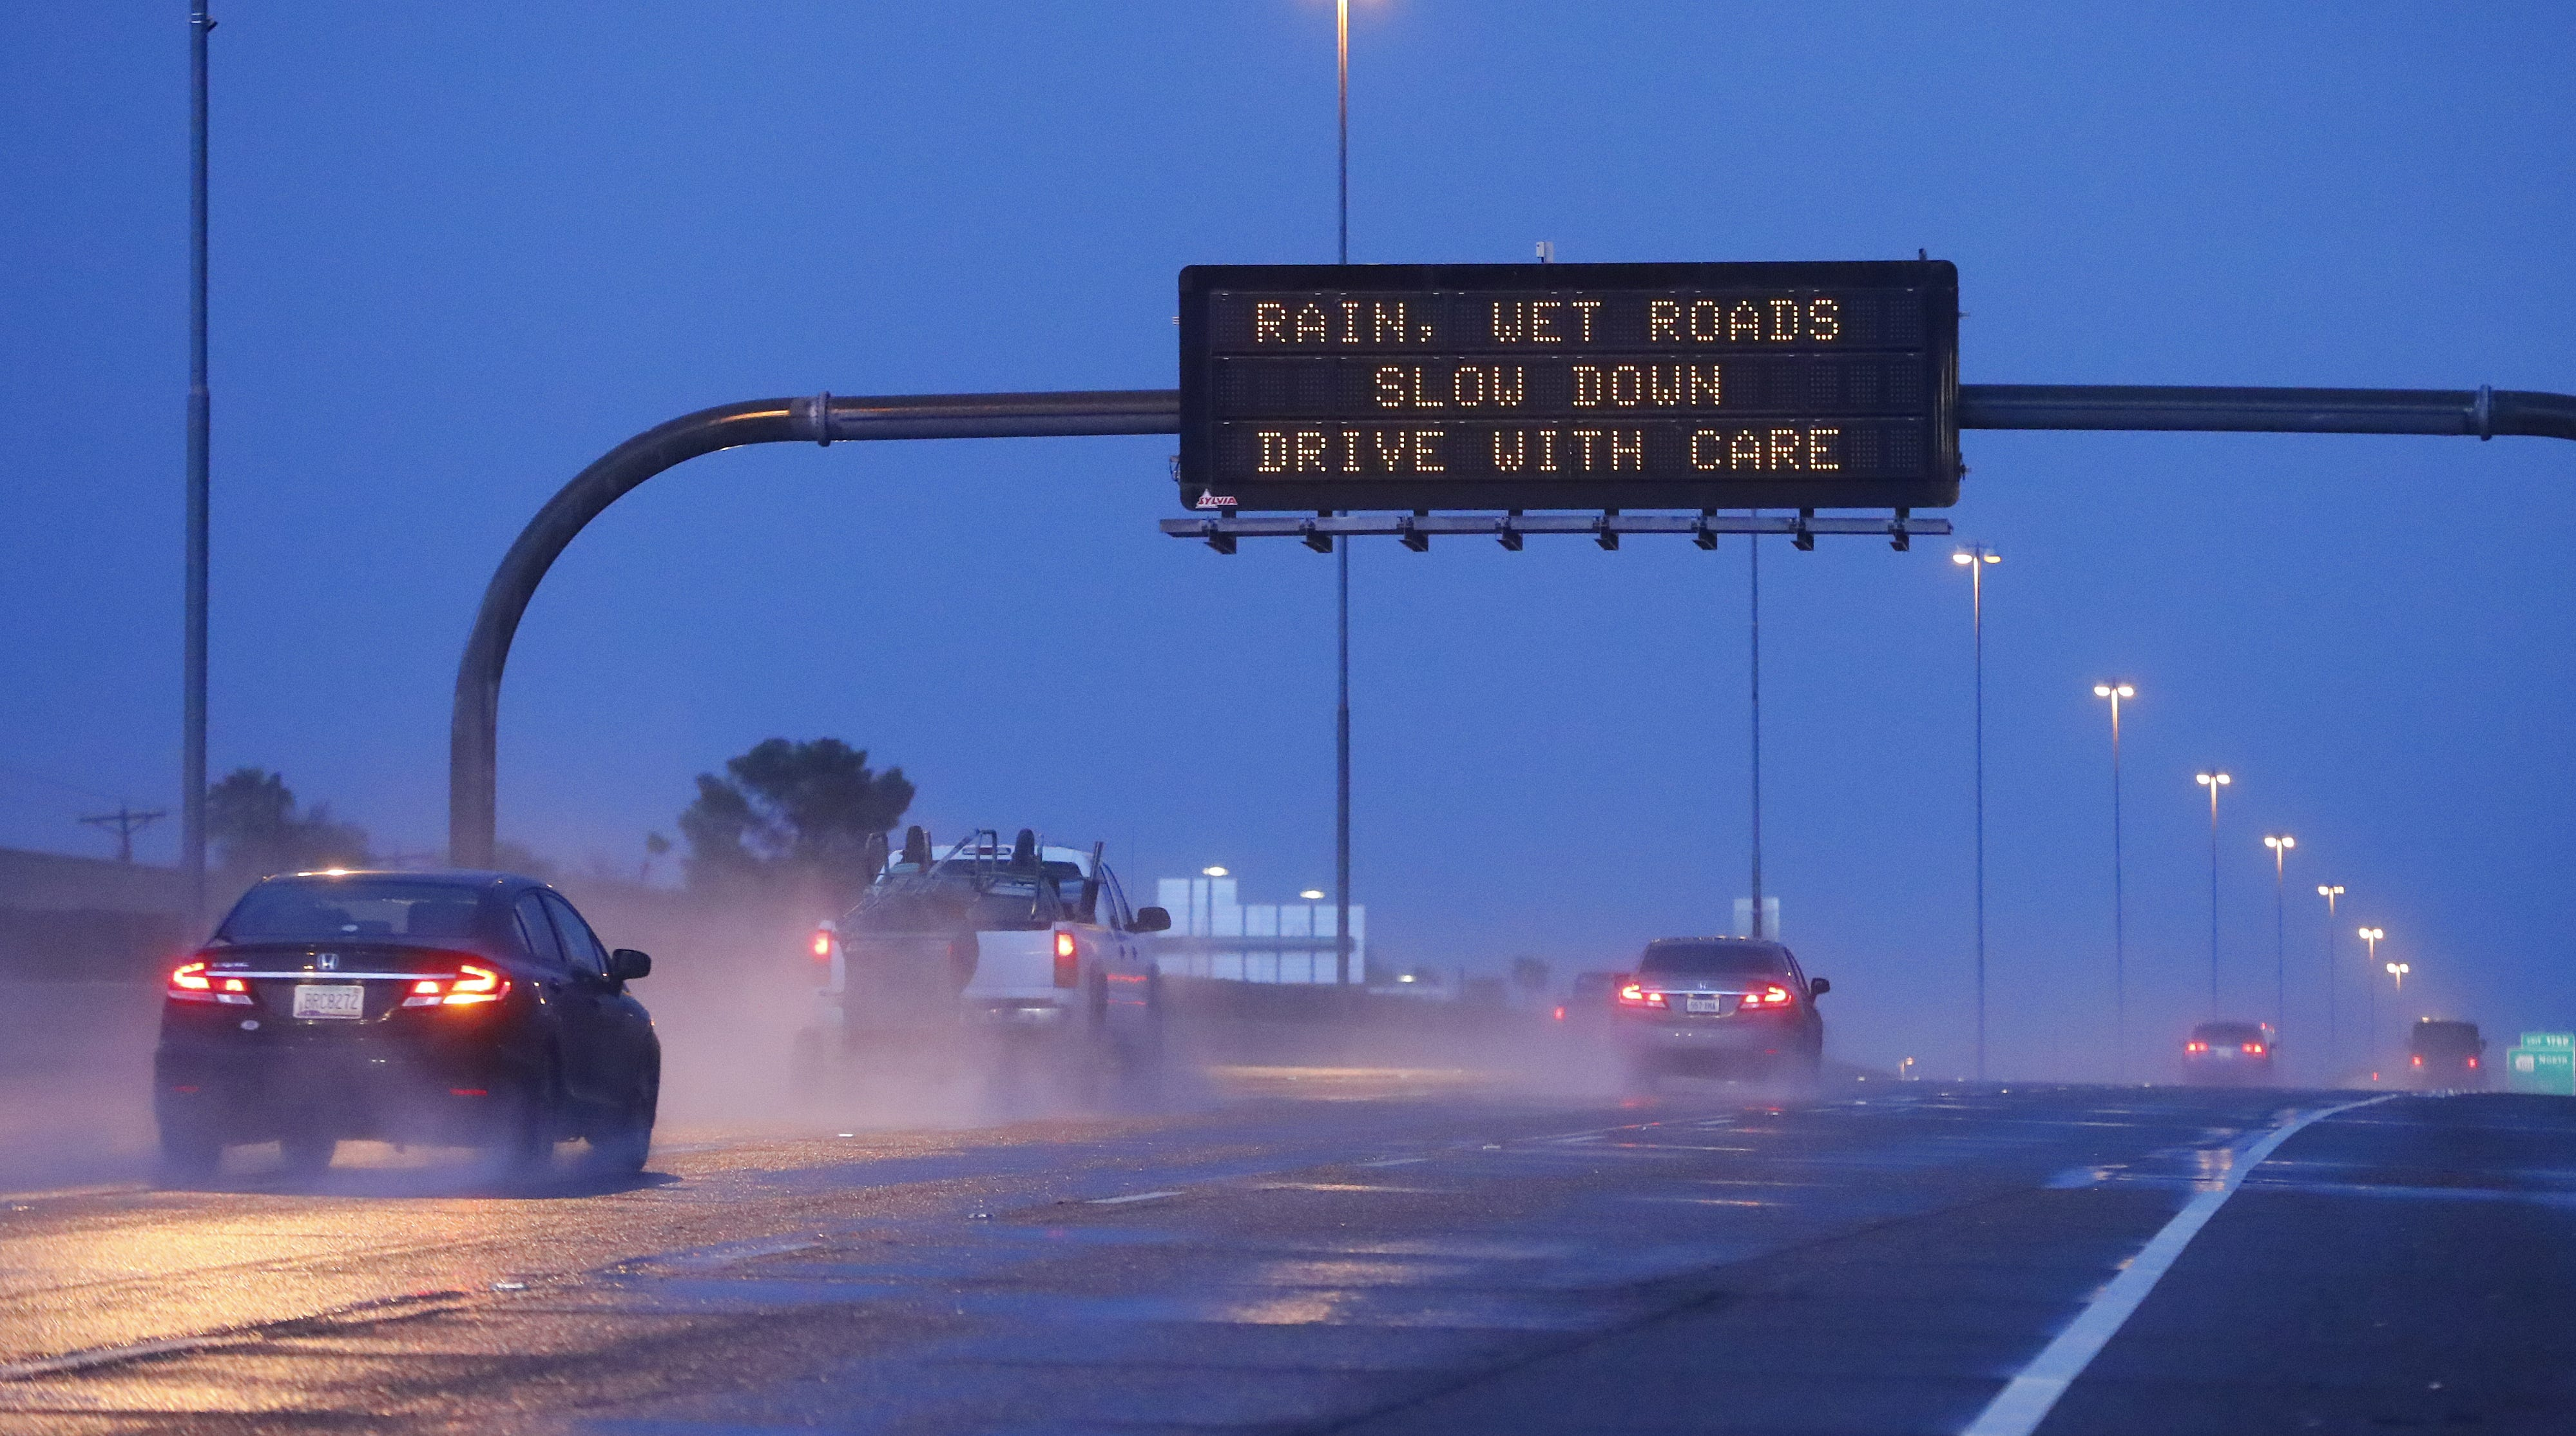 Phoenix weather: Showers, cooler temperatures to linger over weekend from Hurricane Sergio remnants | Arizona Central